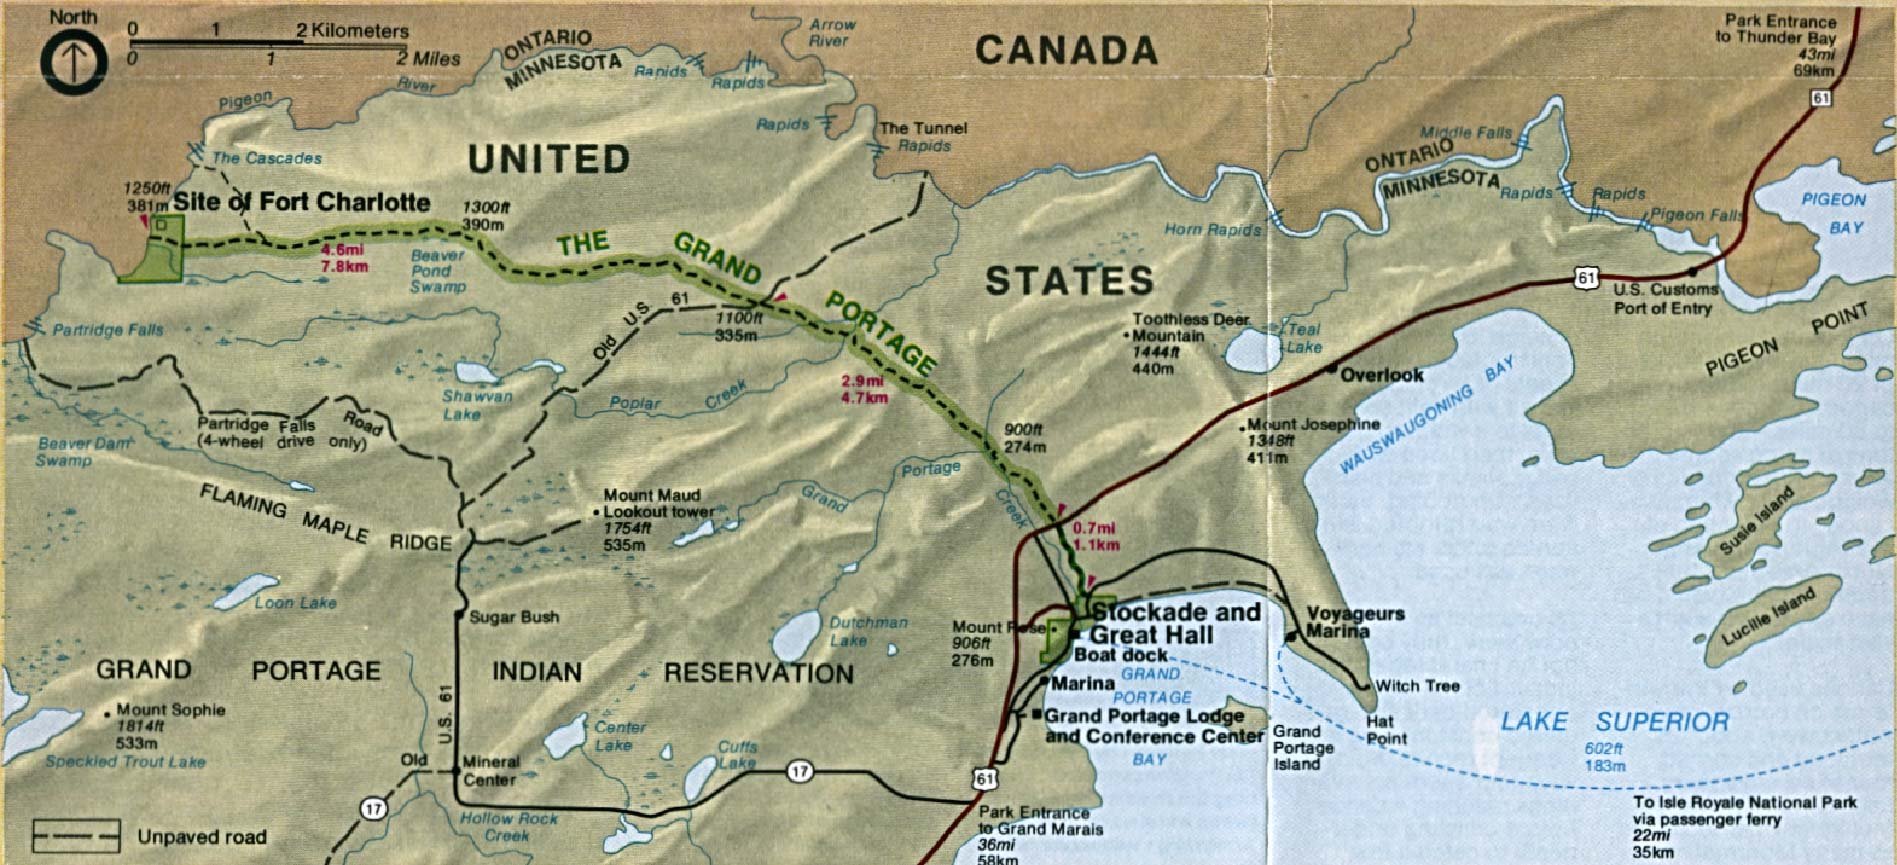 Maps of United States National Parks, Monuments and Historic Sites Grand Portage National Monument [Minnesota] (Area Map) 1994 (269K)